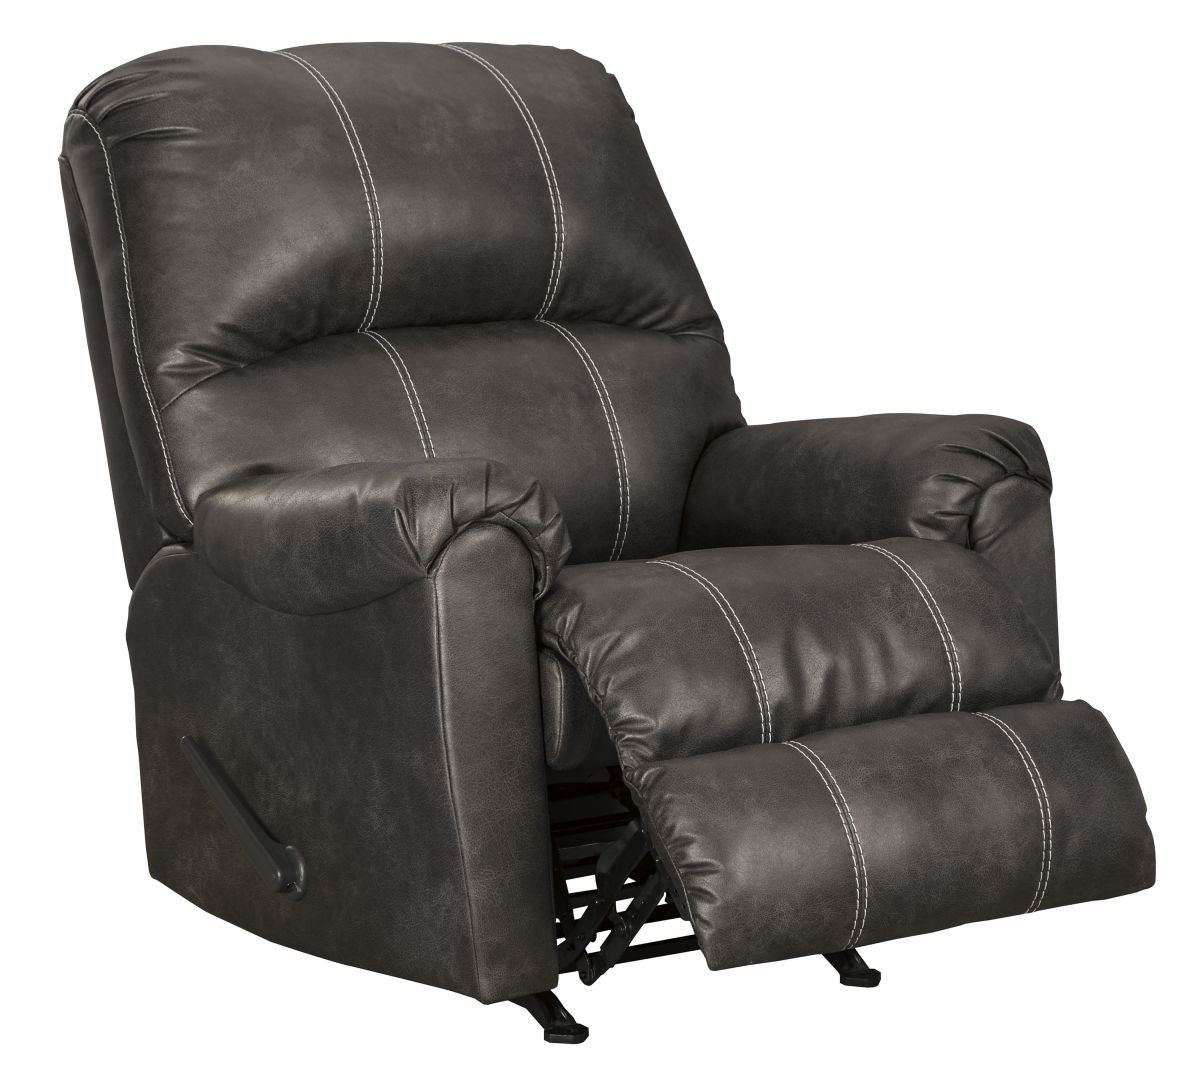 Picture of Kincord Recliner